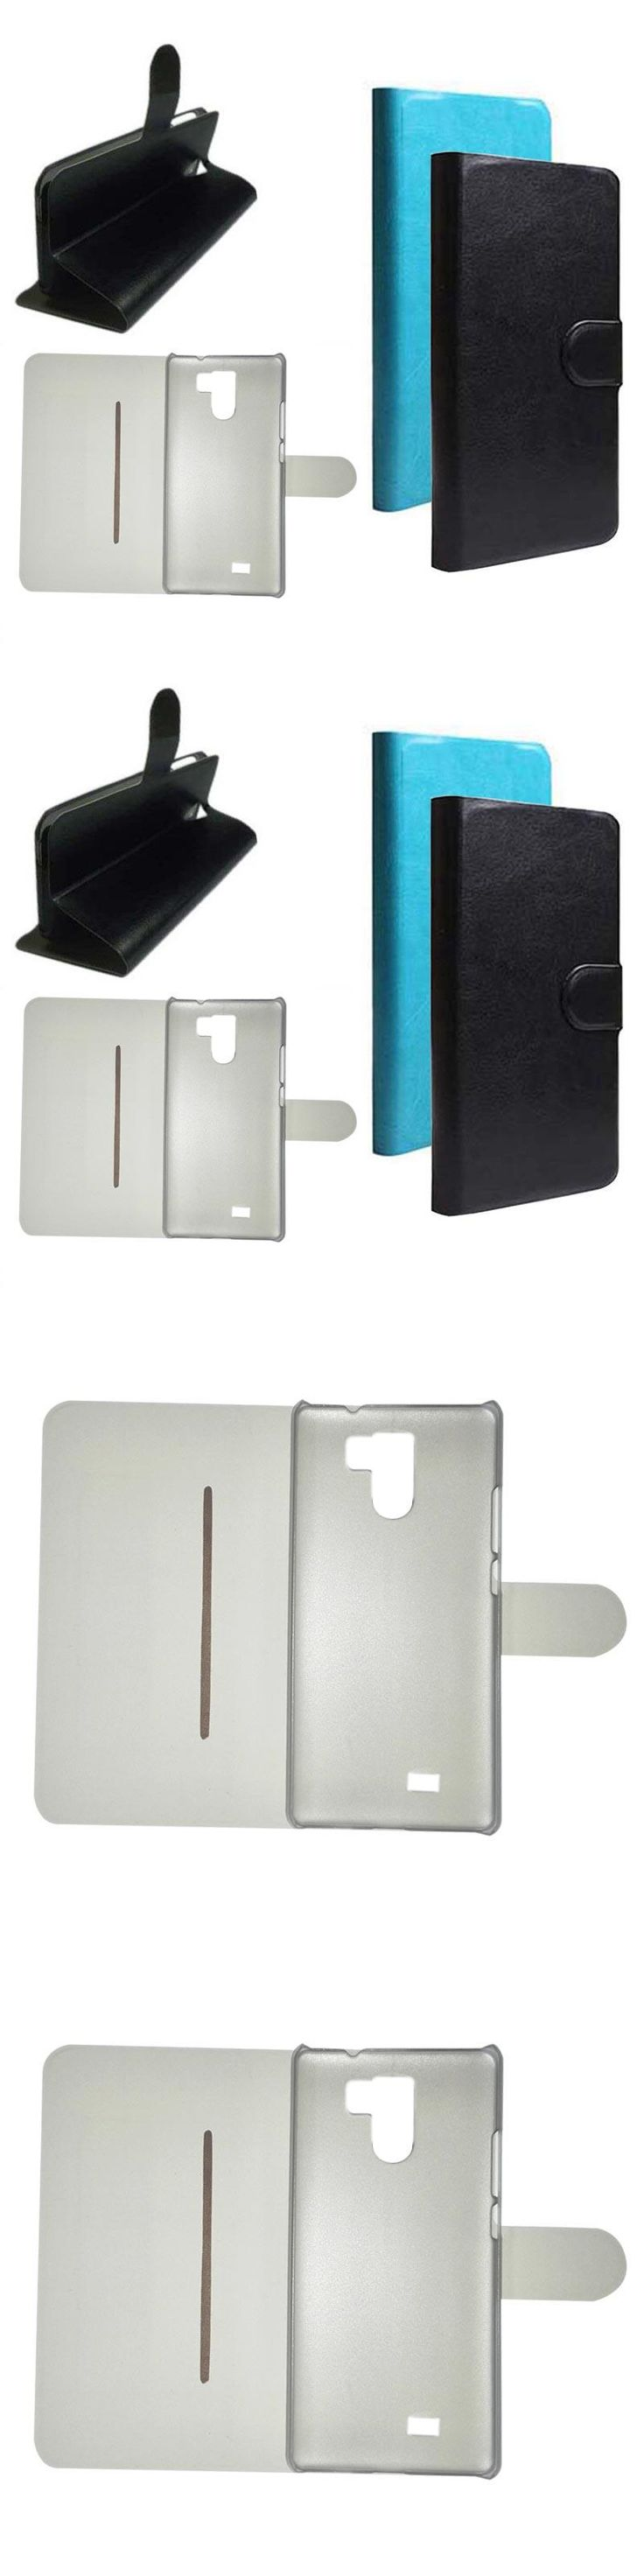 Hot Sell Original PU Leather Flip Cover Case For UMI Fair Cell Phones Holster ( With Touch Pen + tracking number )